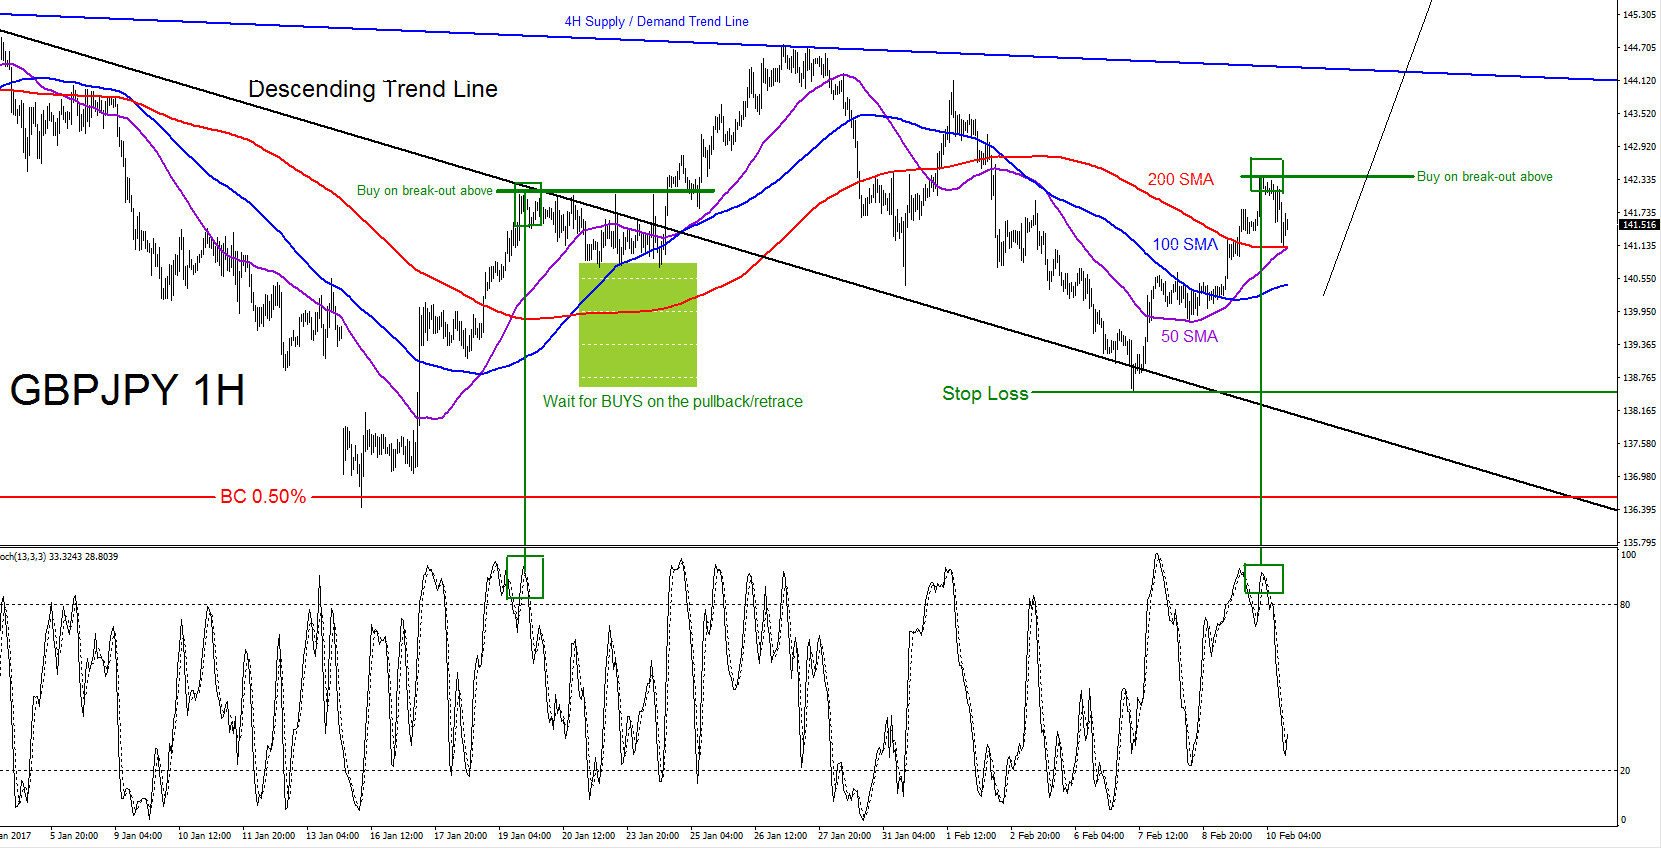 GBPJPY Bullish Trend Starting? Part 2